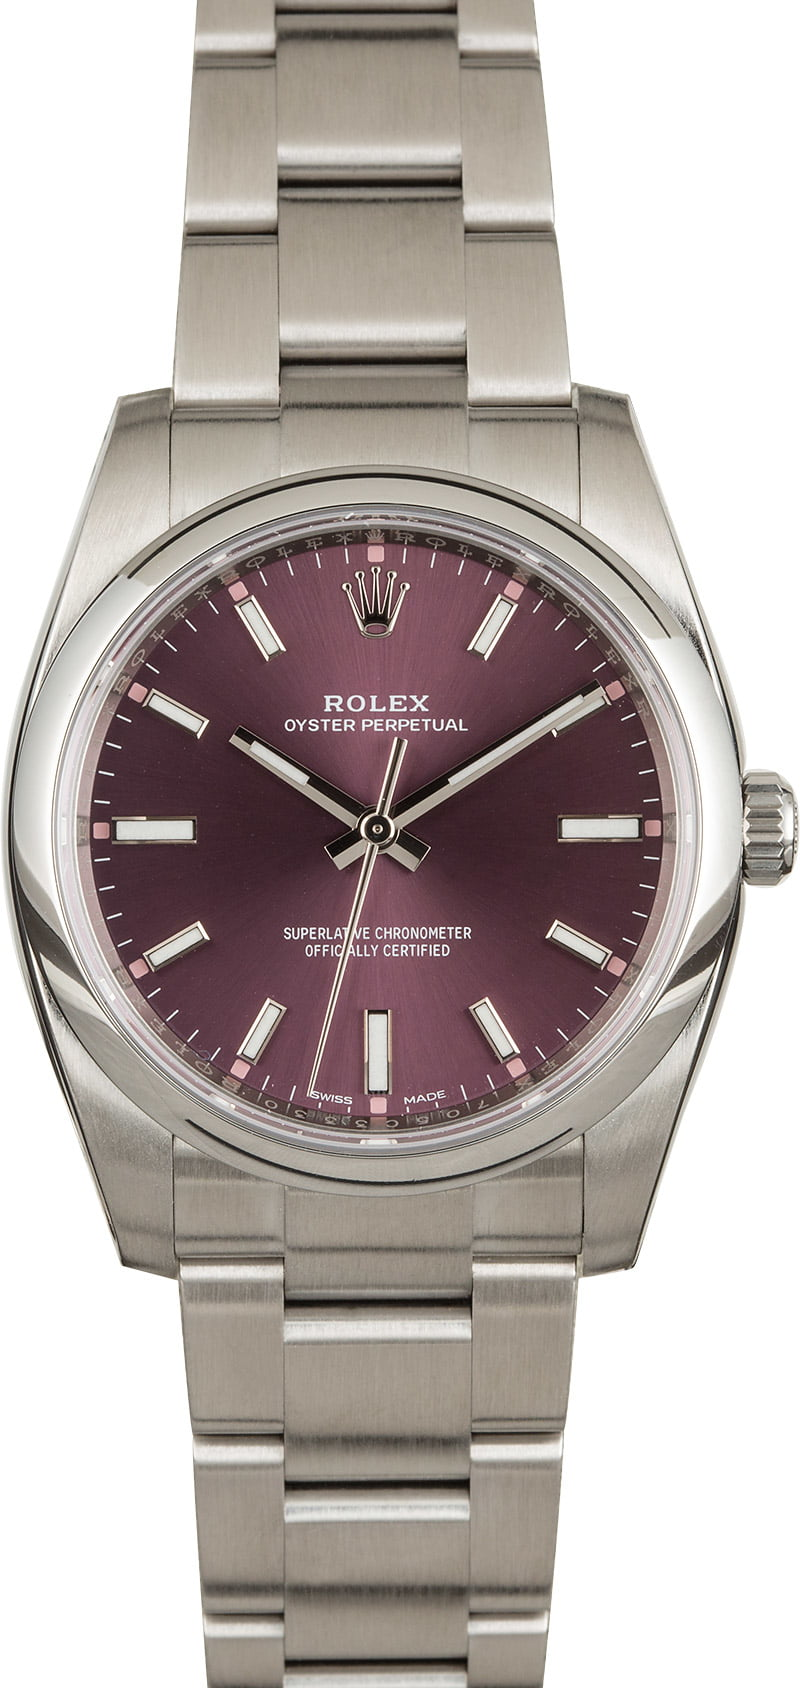 Our Favorite Rare Colorful Rolex Watch Dials Oyster Perpetual 114200 Red Grape Dial